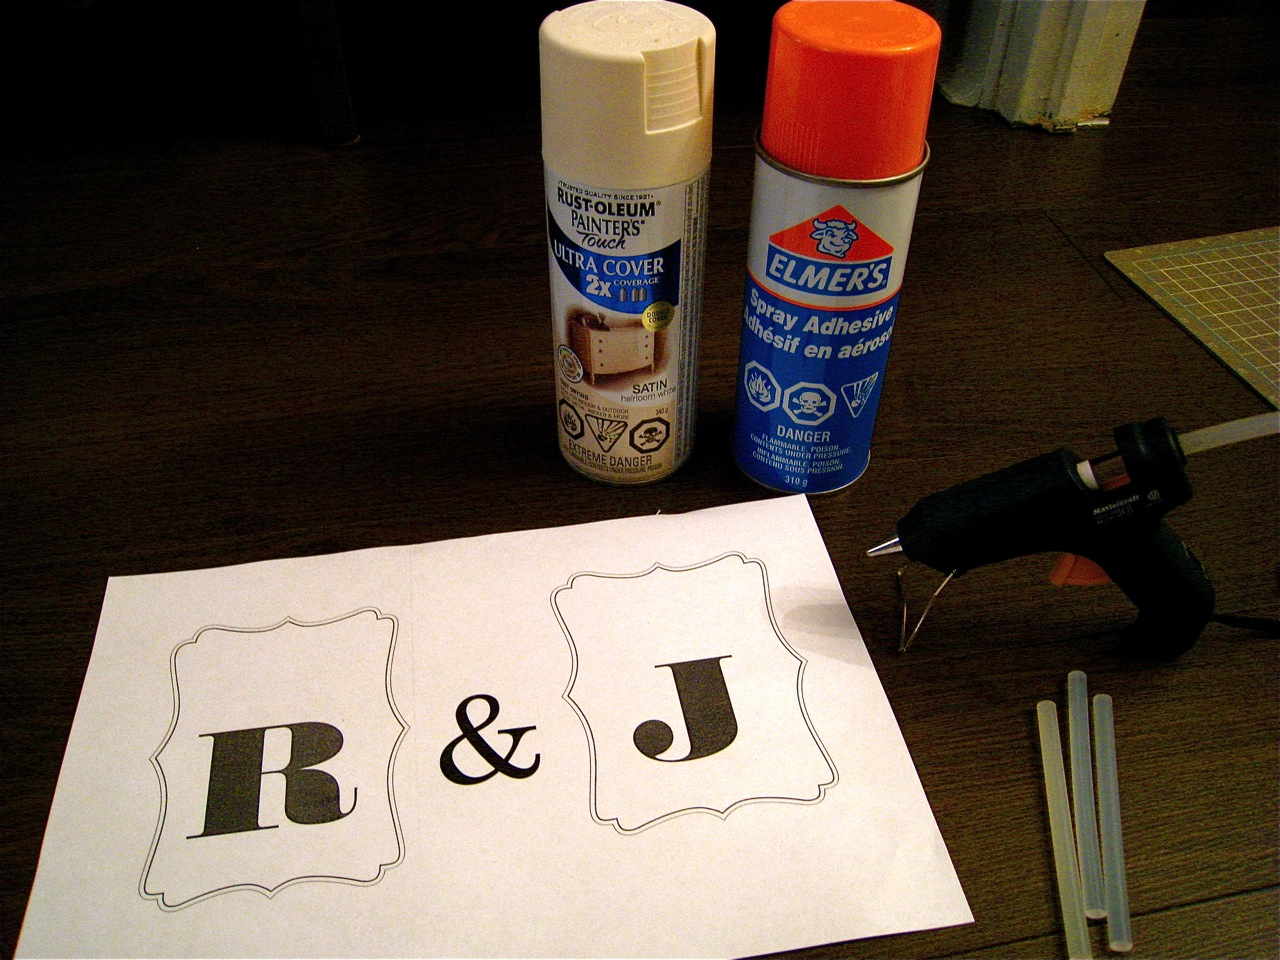 spray paint spray adhesive letter templates and hot glue gun